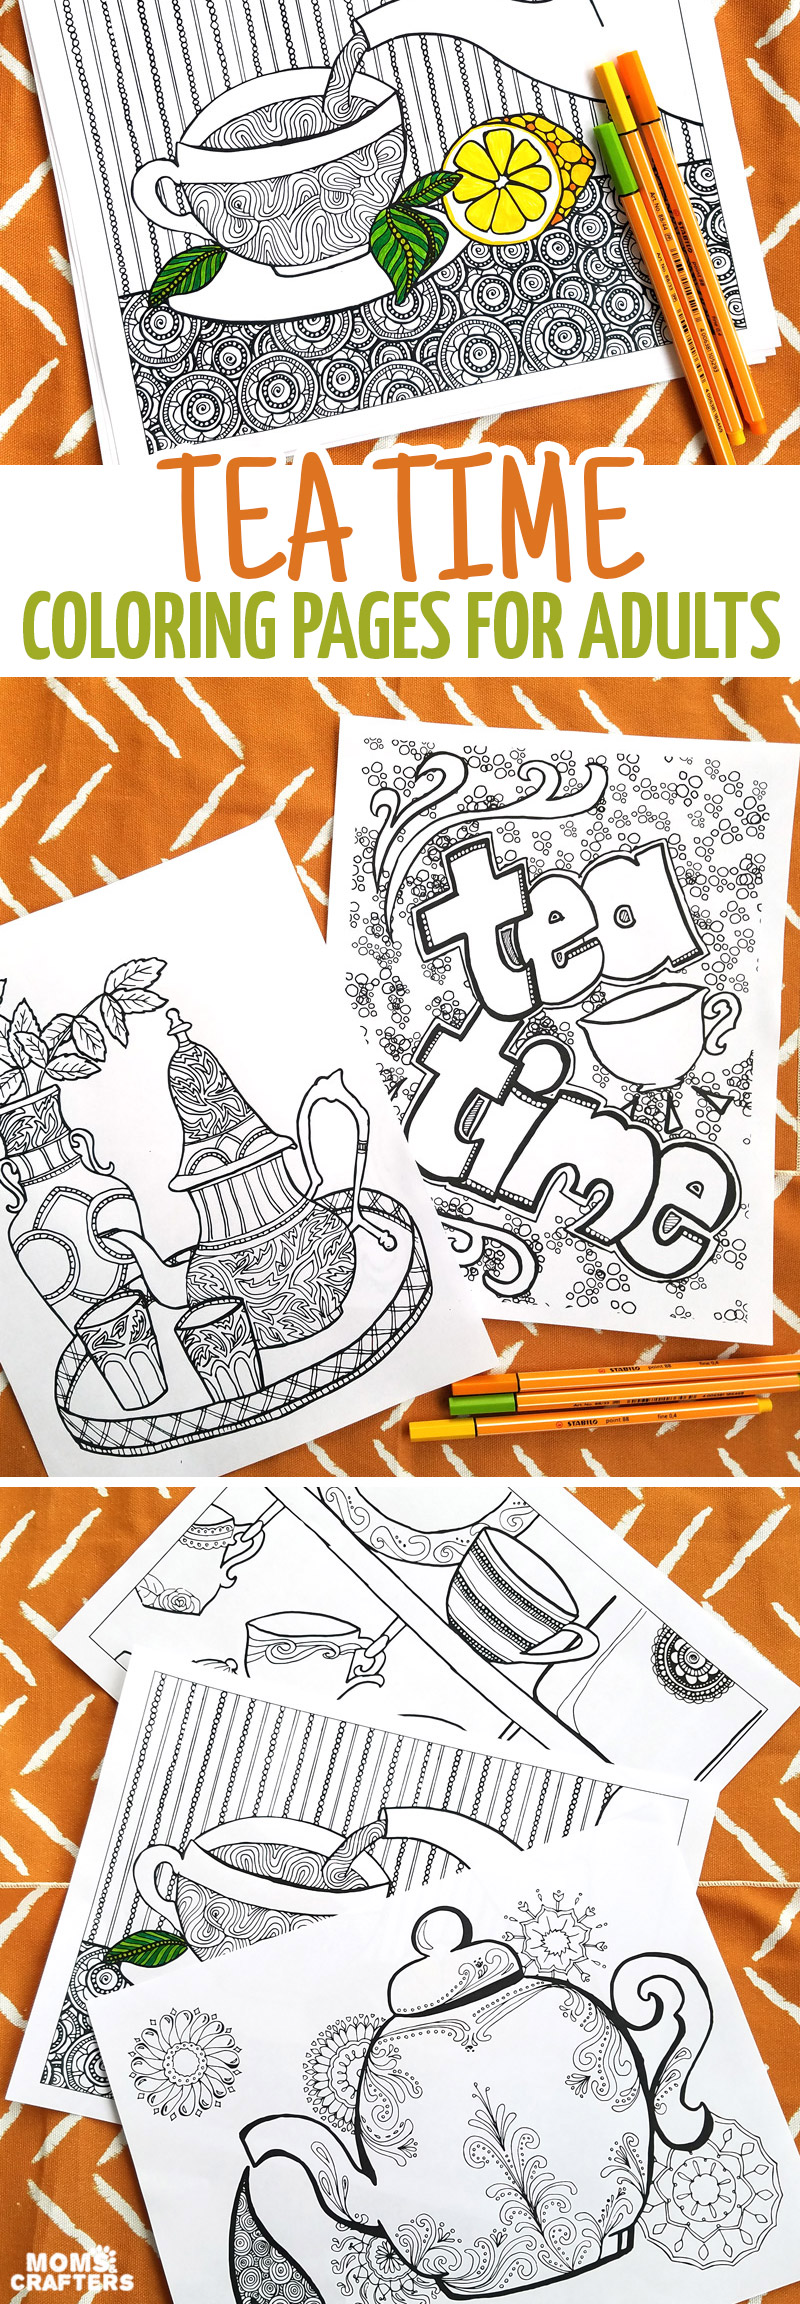 I Love These Fun Printable Tea Coloring Pages For Adults This Cool 5 Page Colouring